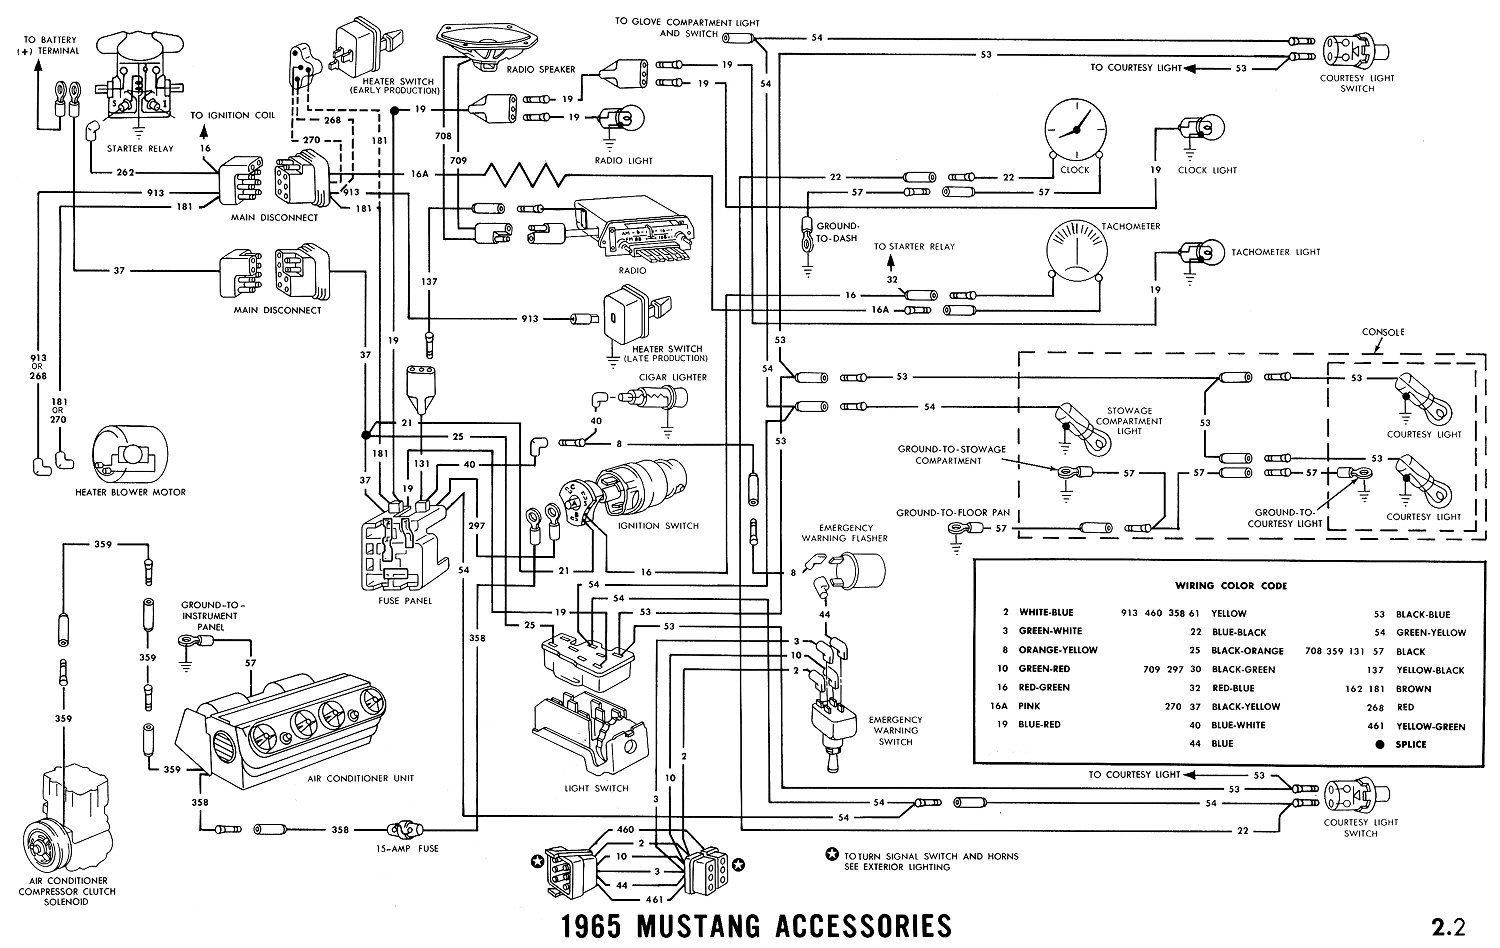 hight resolution of 65 mustang alternator wiring diagram wiring diagram hub 1966 mustang alternator wiring diagram 1965 mustang voltage regulator wiring diagram